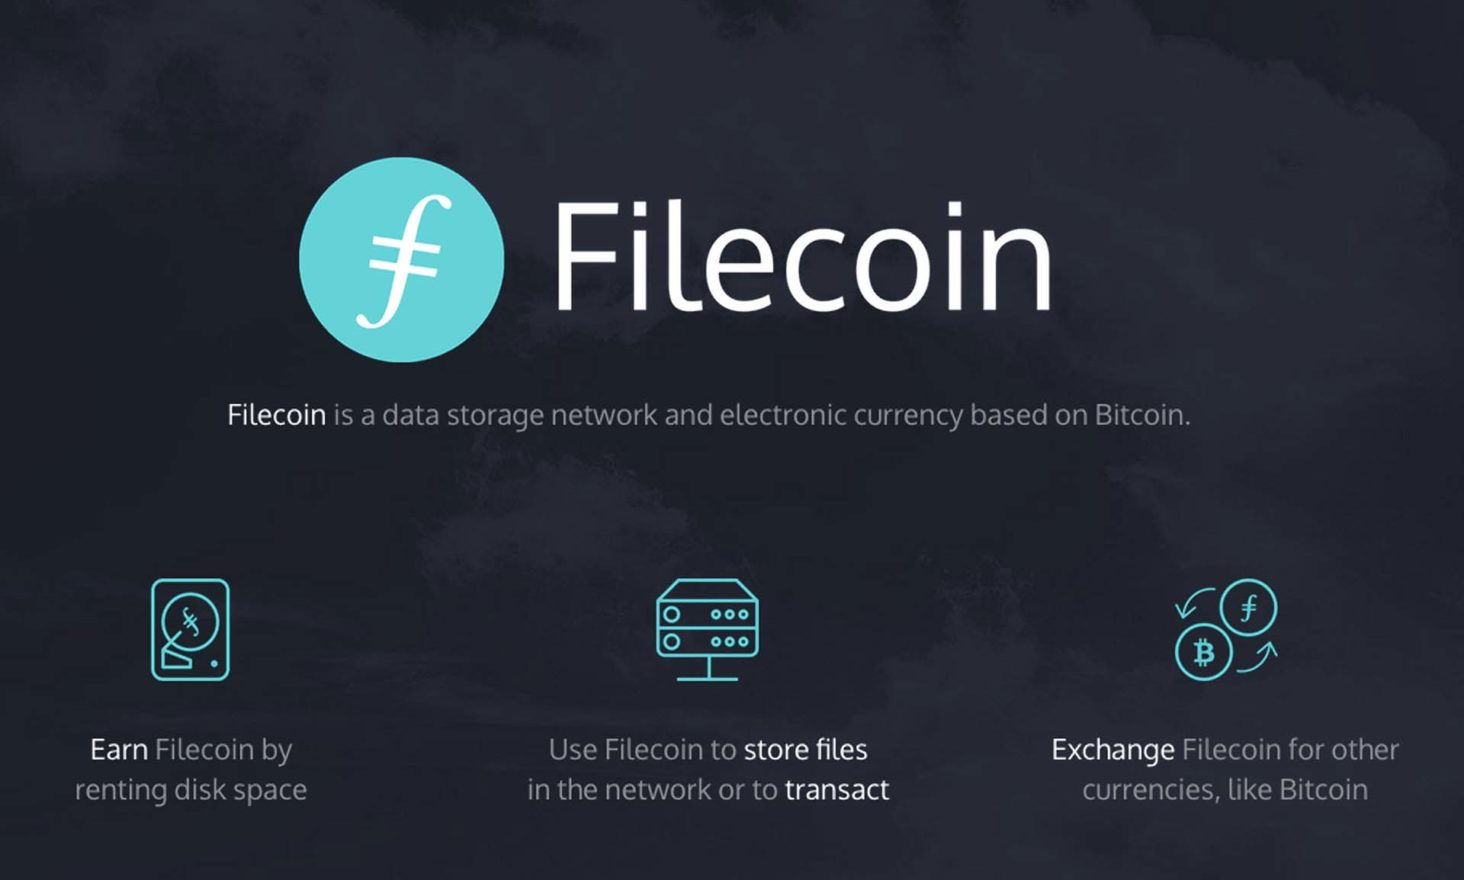 Filecoin Regrets Shutting Out Supporters to Meet SEC Regulations